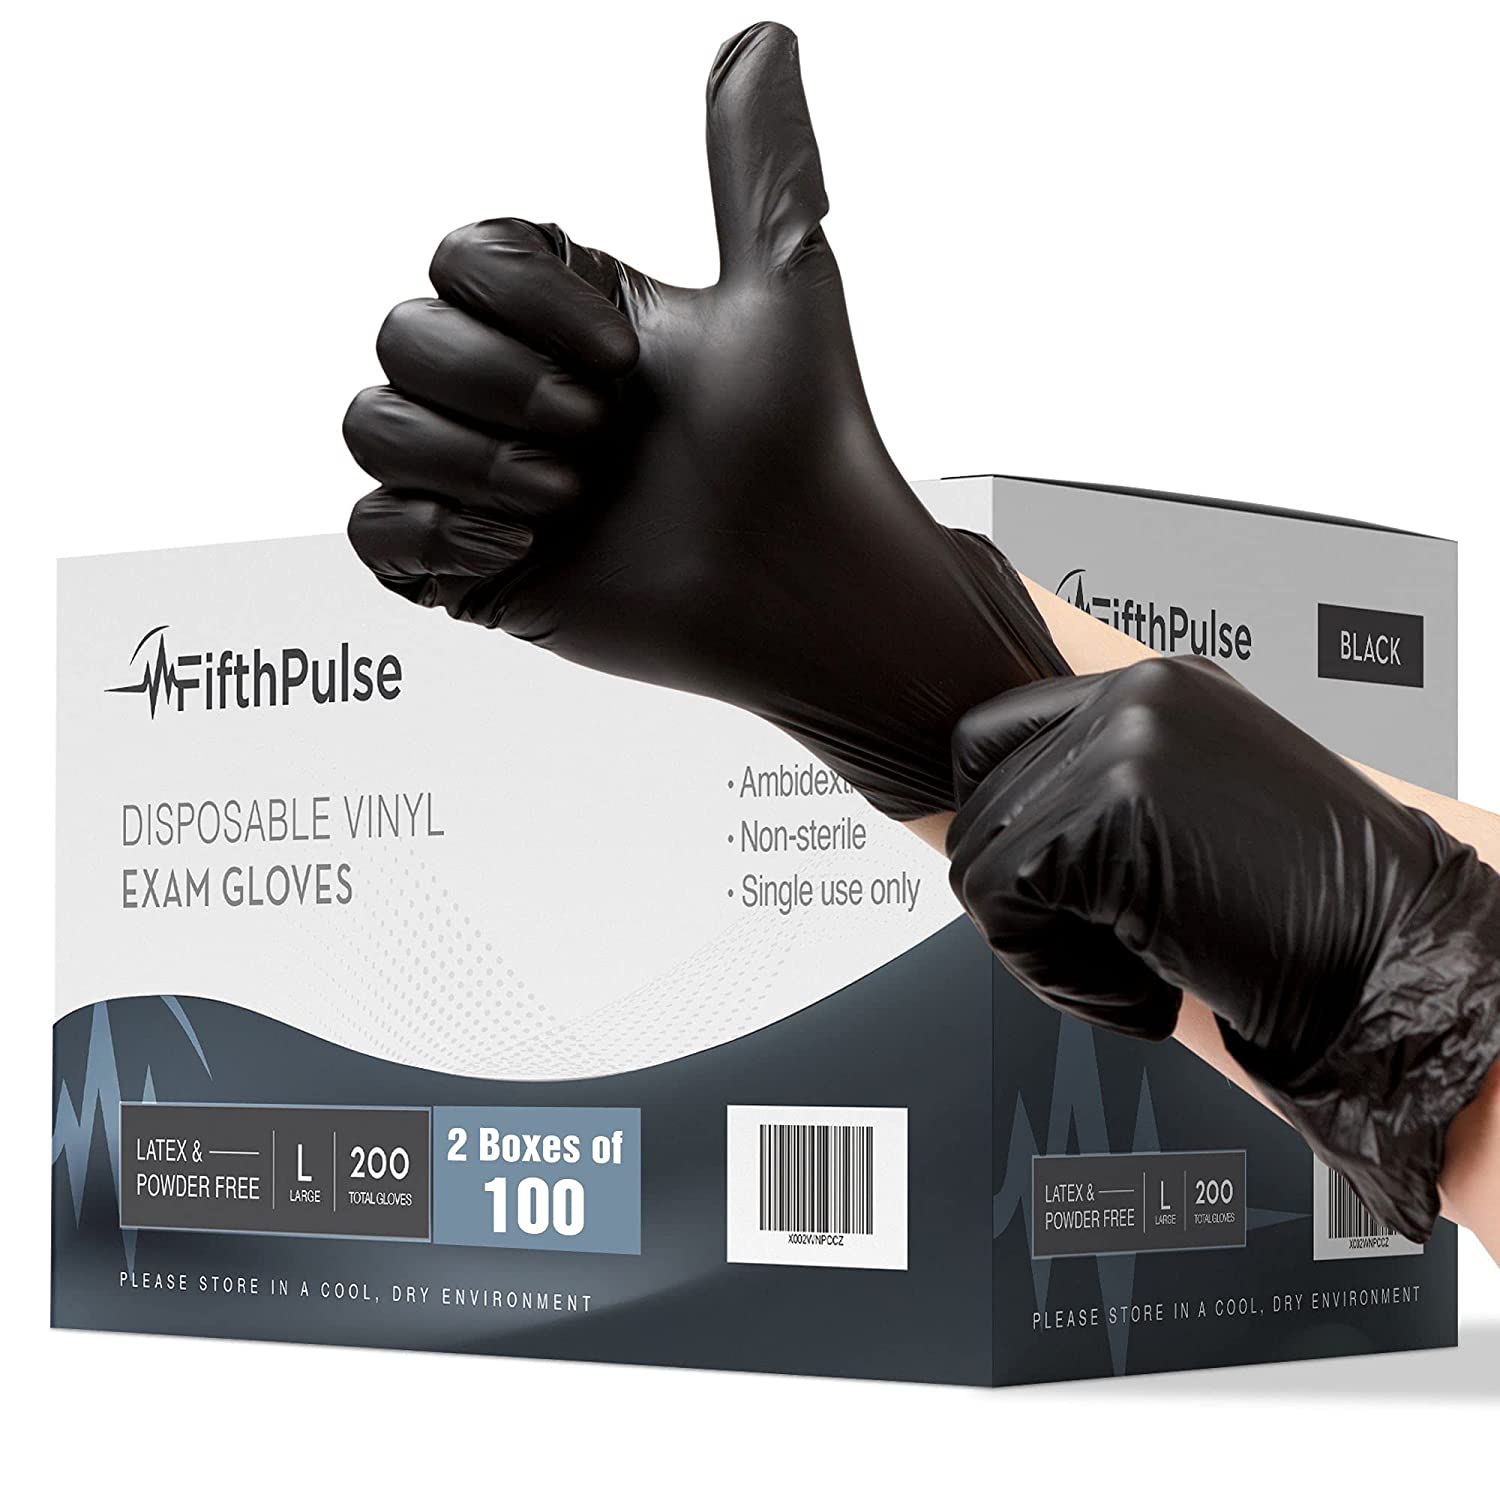 Black Vinyl Disposable Gloves Large 200 Pack - Latex Free, Powder Free Medical Exam Gloves - Surgical, Home, Cleaning, and Food Gloves - 3 Mil Thickness - 2 Boxes of 100